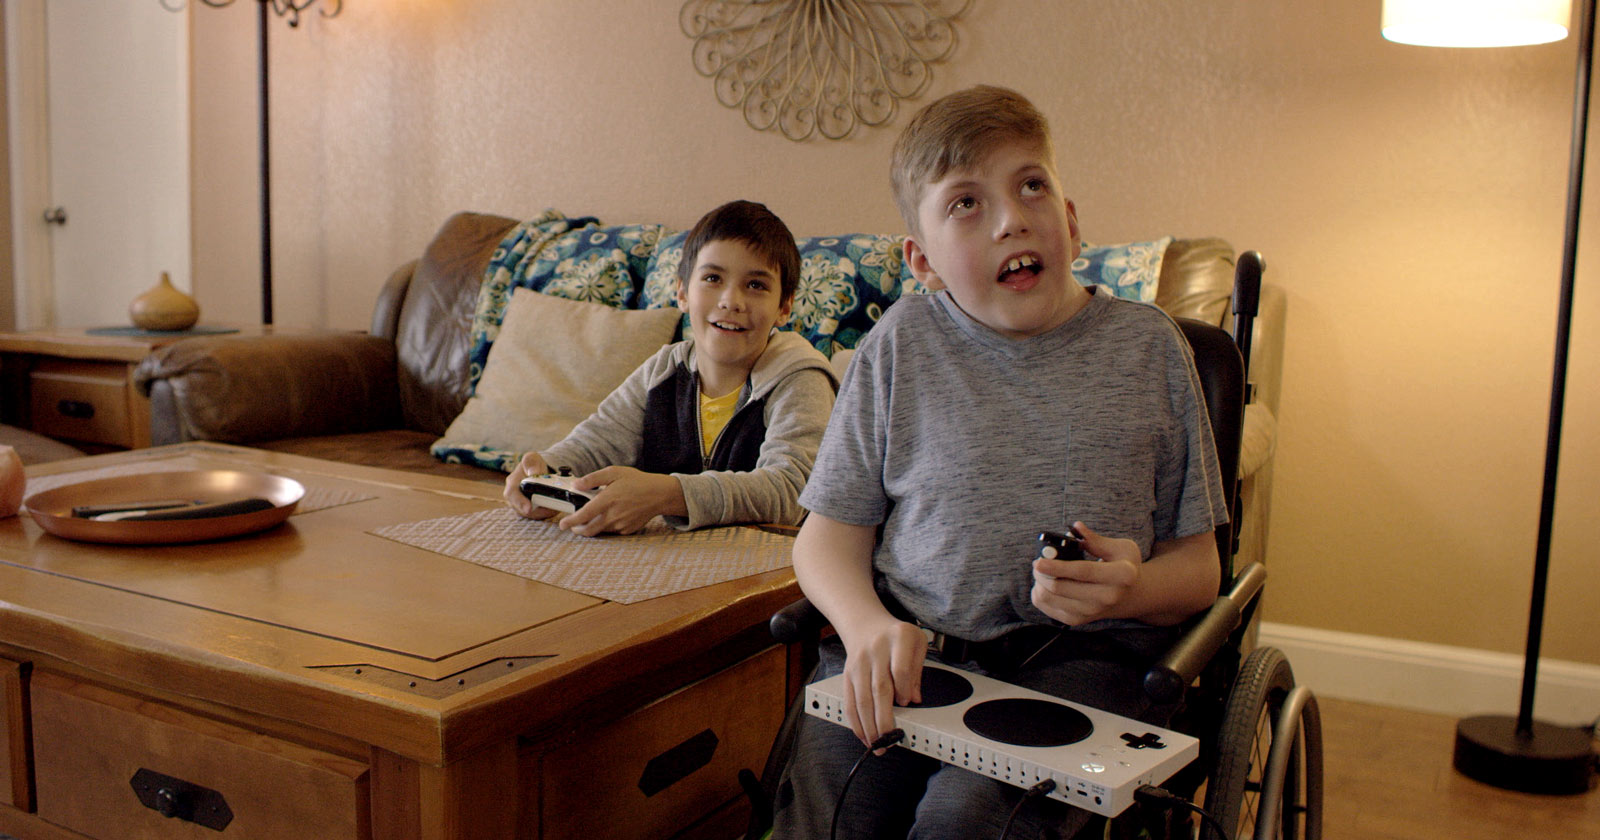 Owen using the Xbox Adaptive Controller with a friend holding an Xbox Wireless Controller